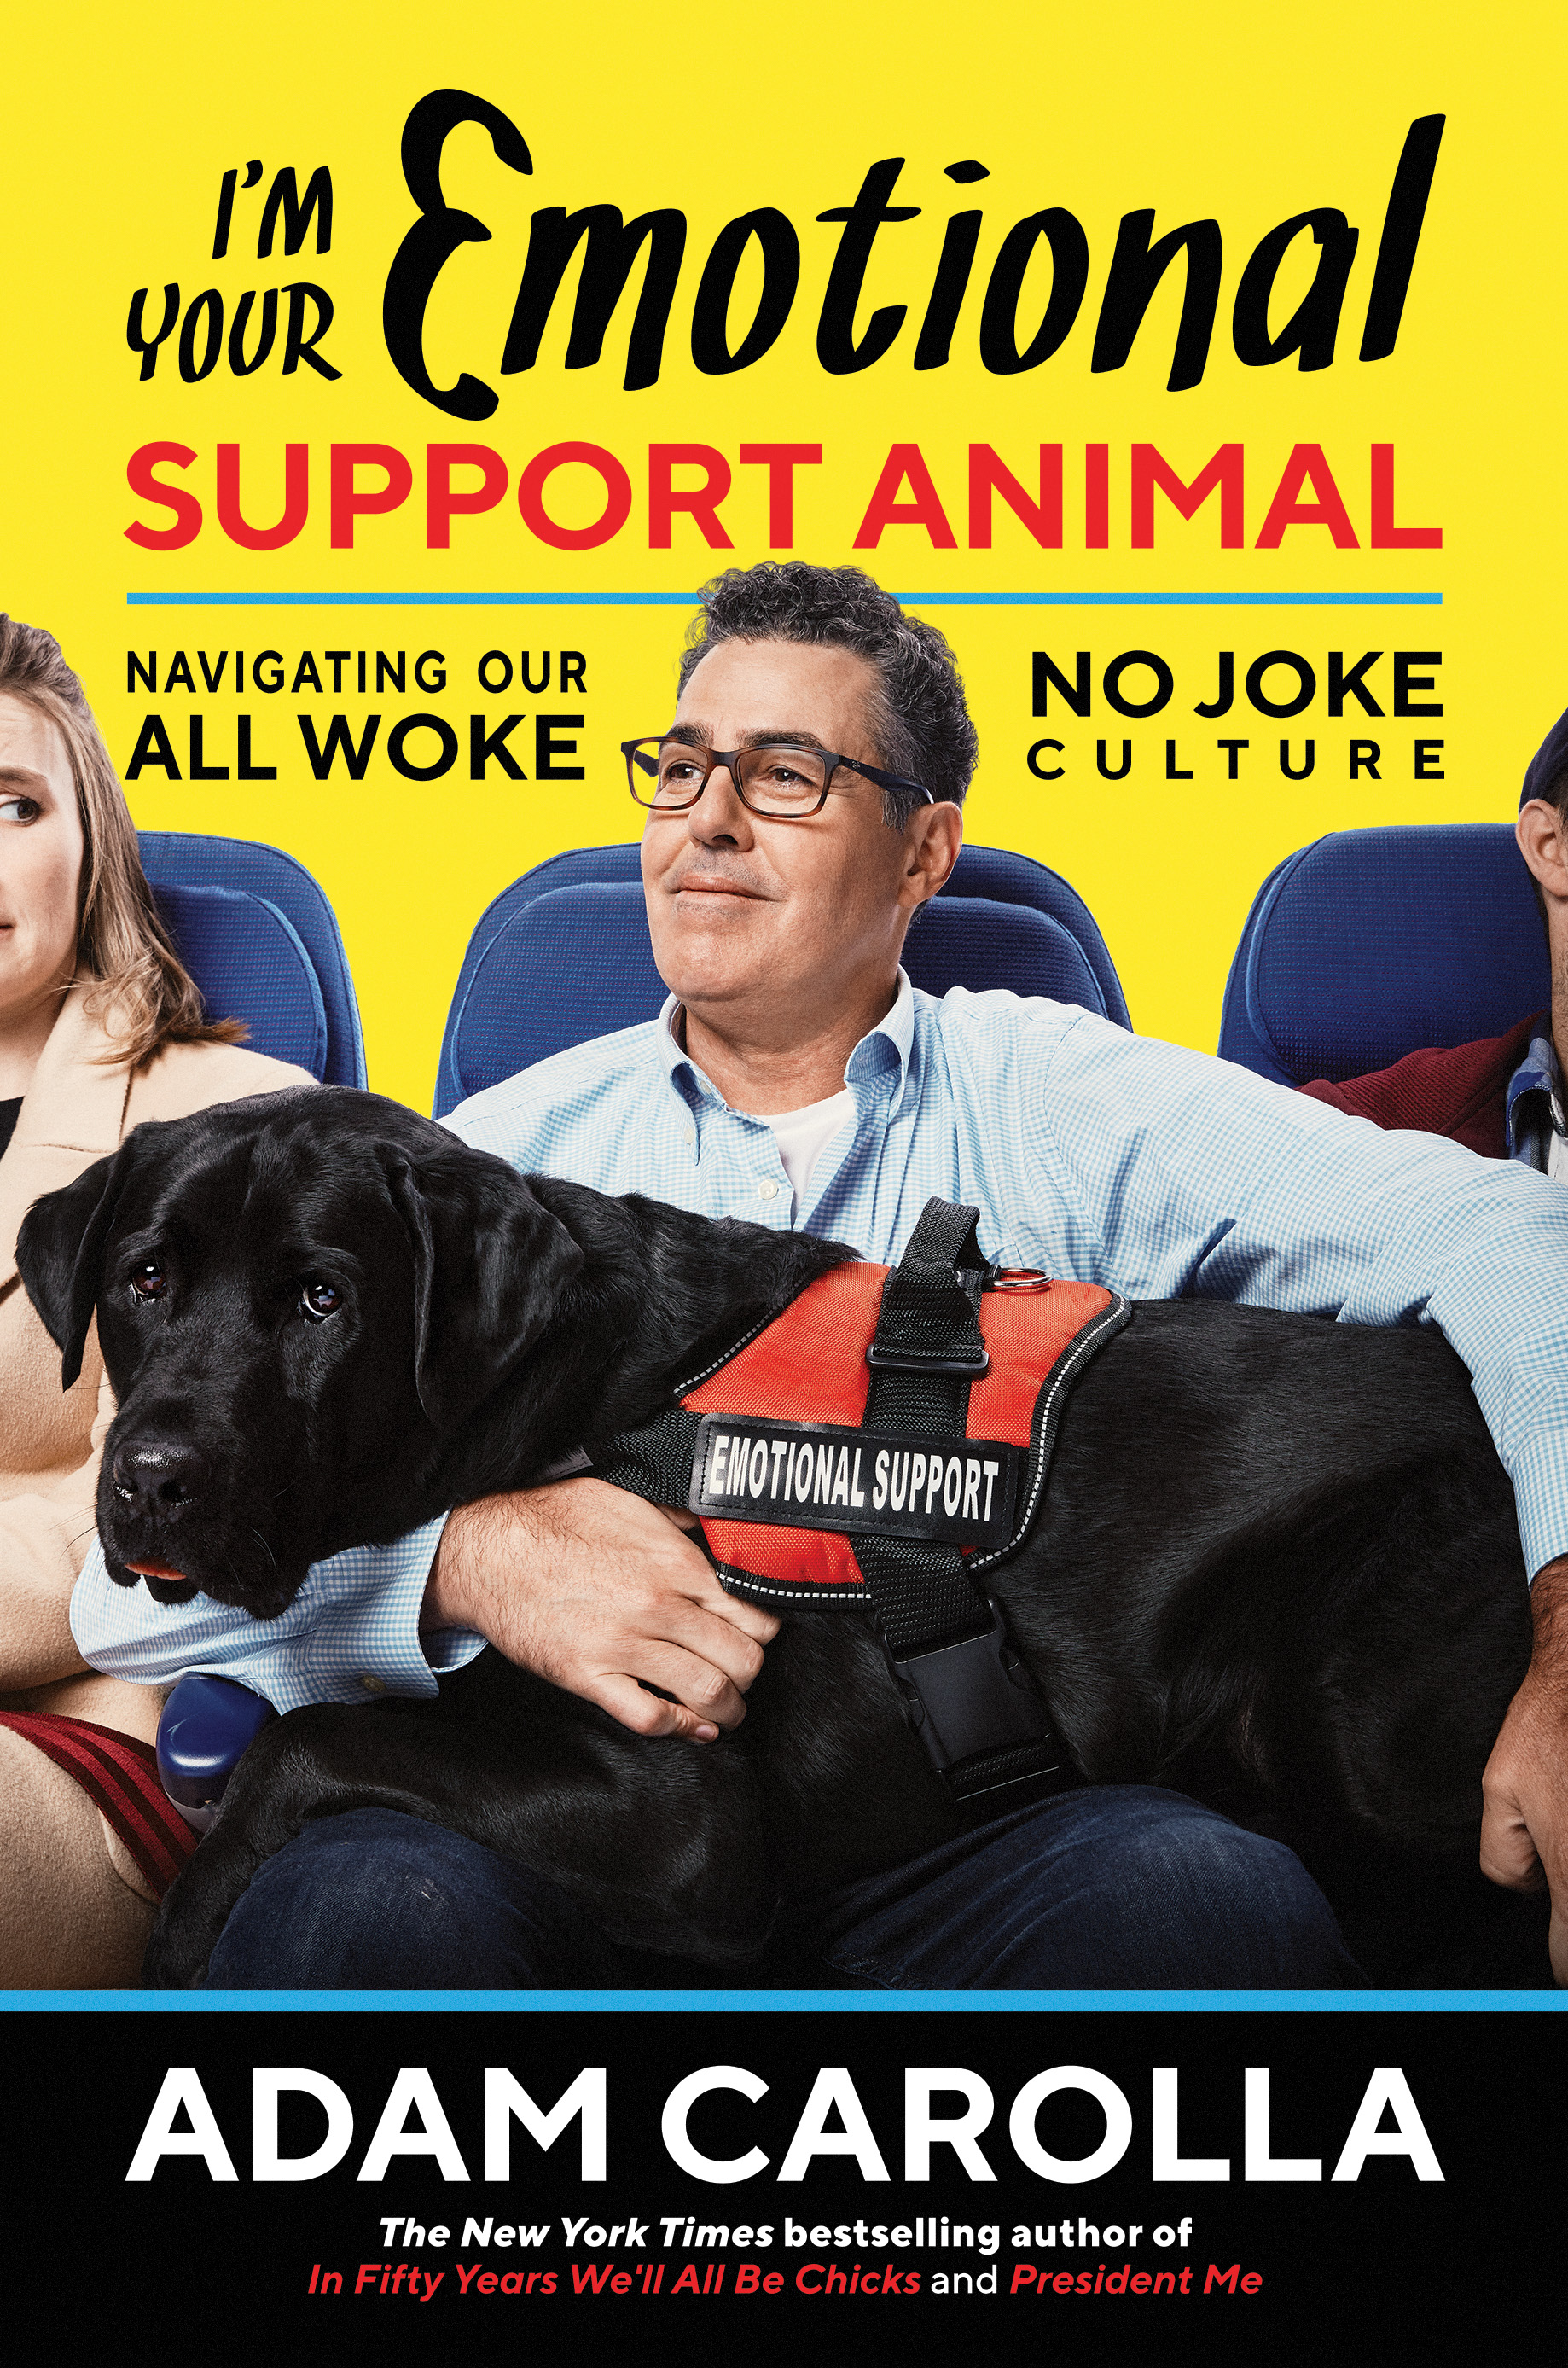 I'm Your Emotional Support Animal